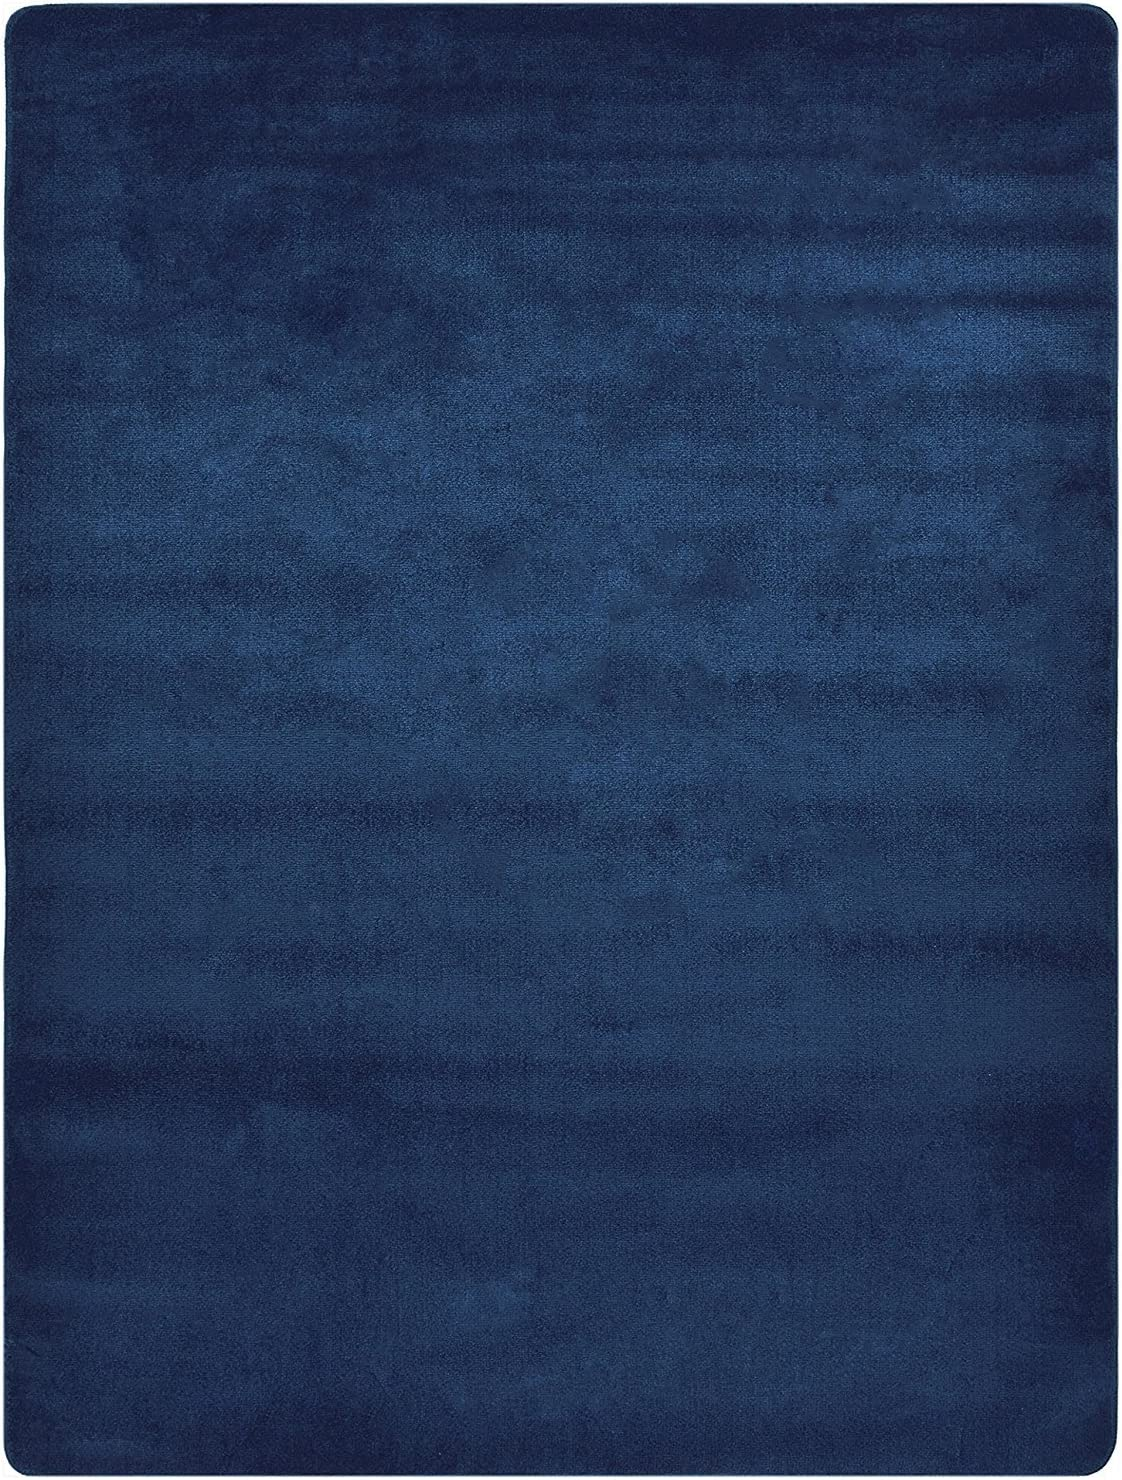 Euro Collection Solid Color Area Rug Rugs Slip Skid Resistant Rubber Backing Machine Washable More Color Options (Navy Blue, 3'3